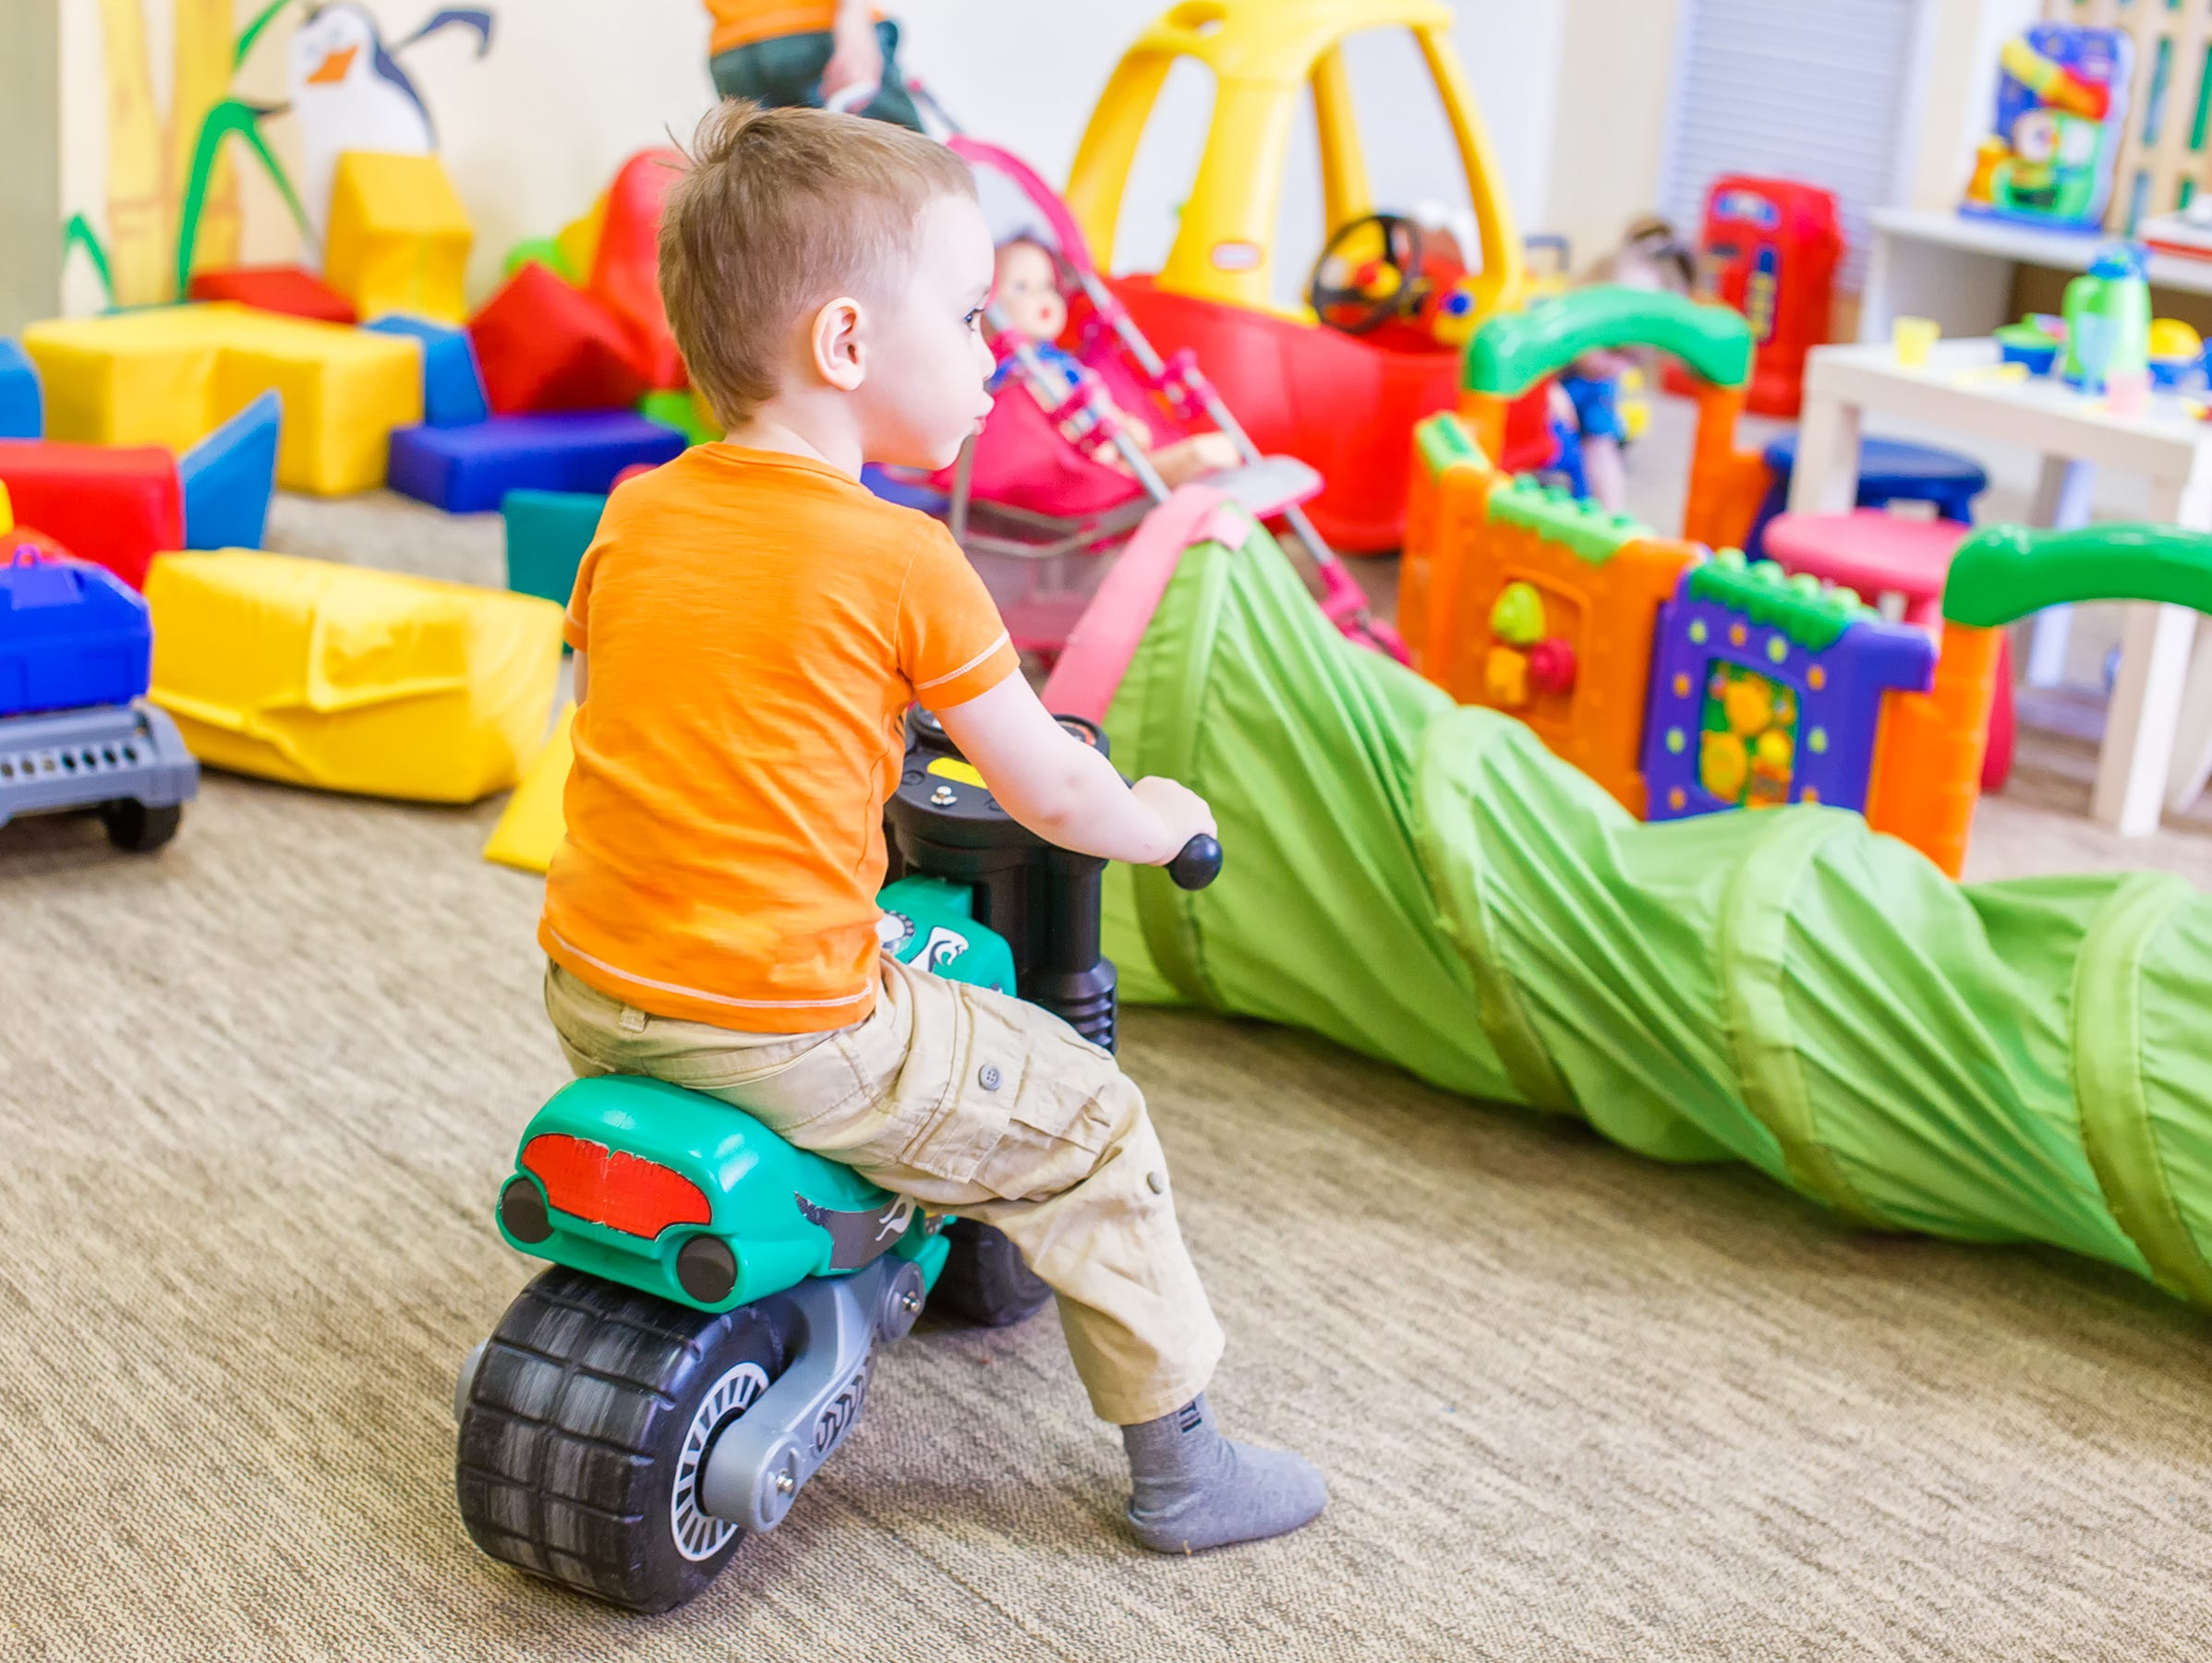 Christmas Toys For Boys : More toys at christmas good be bad for your child study suggests